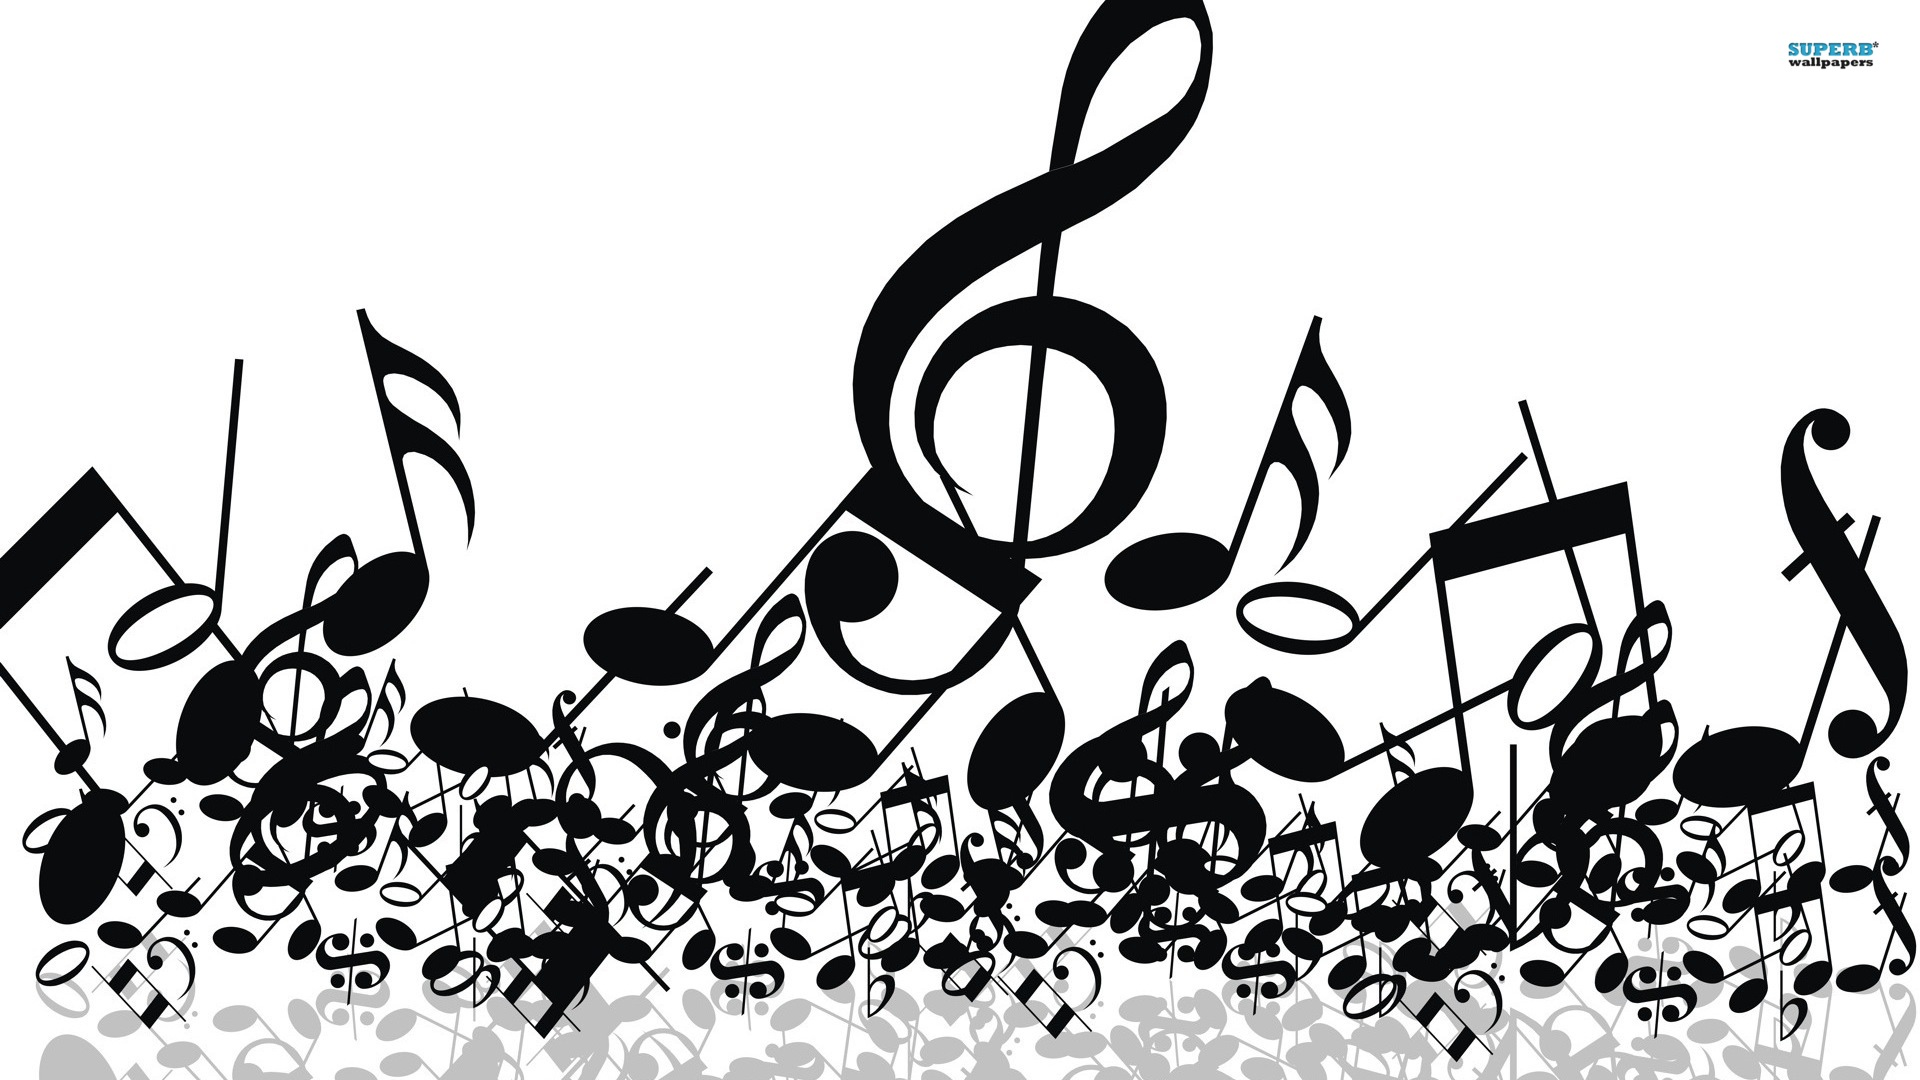 Coloured Single Music Notes Free Cliparts That You Can Download To